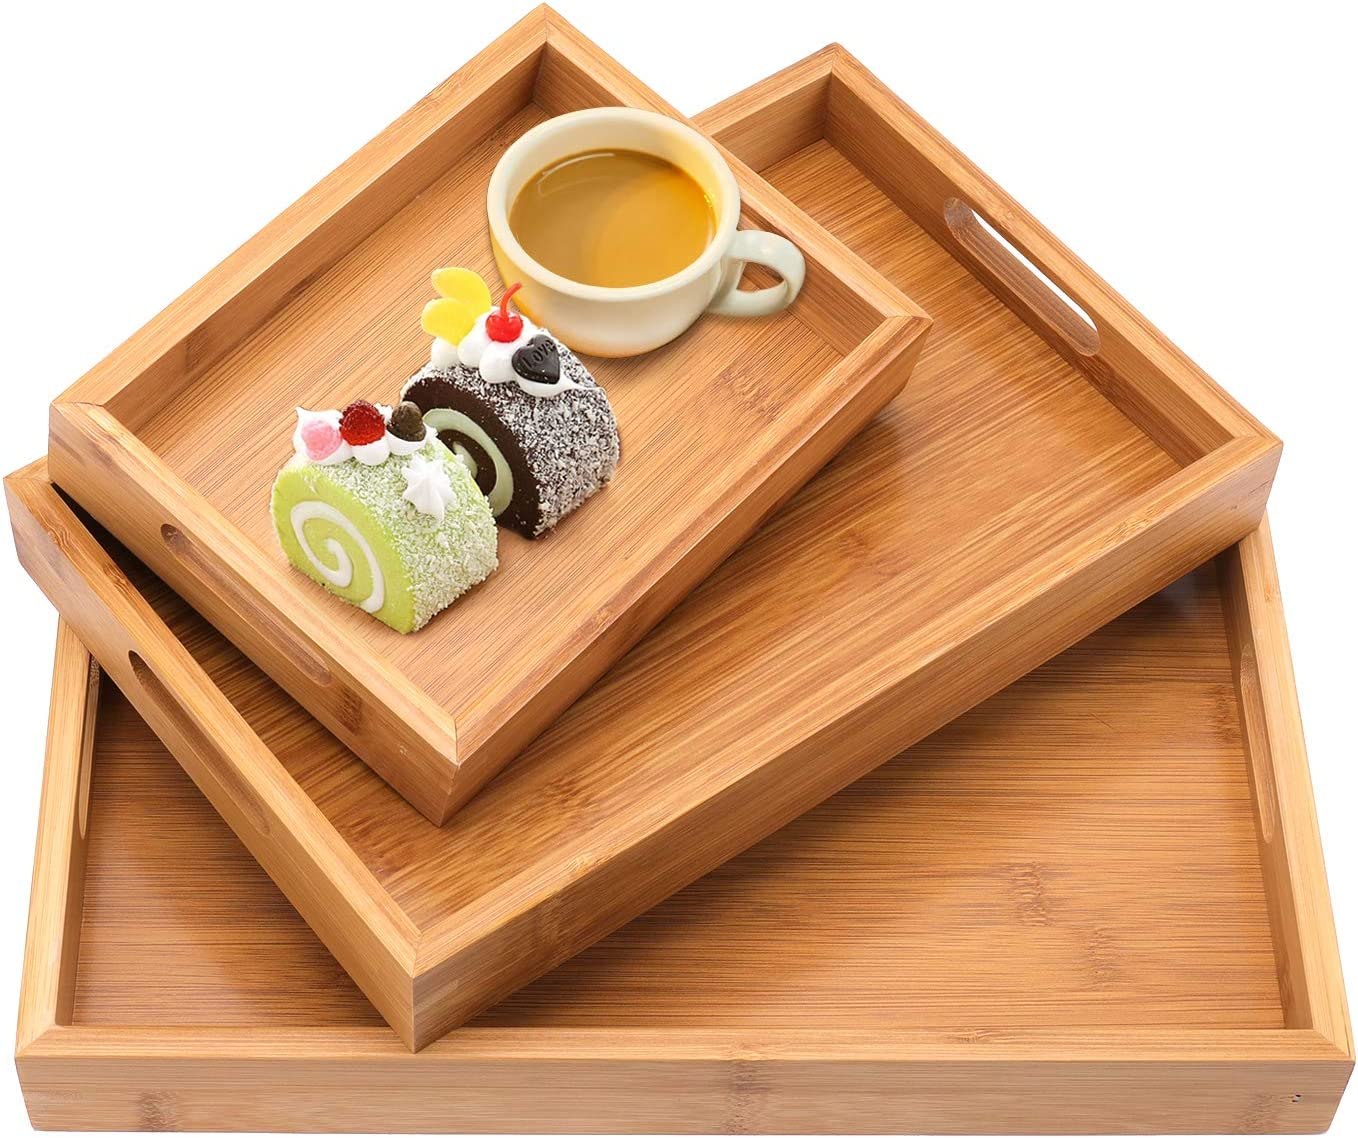 Jucoan 3 Pack Bamboo Butler Serving Tray with Handles, Rectangle Wooden Ottoman Tray, Breakfast Dinner Snack Food Trays for Kitchen Coffee Table Parties Restaurants